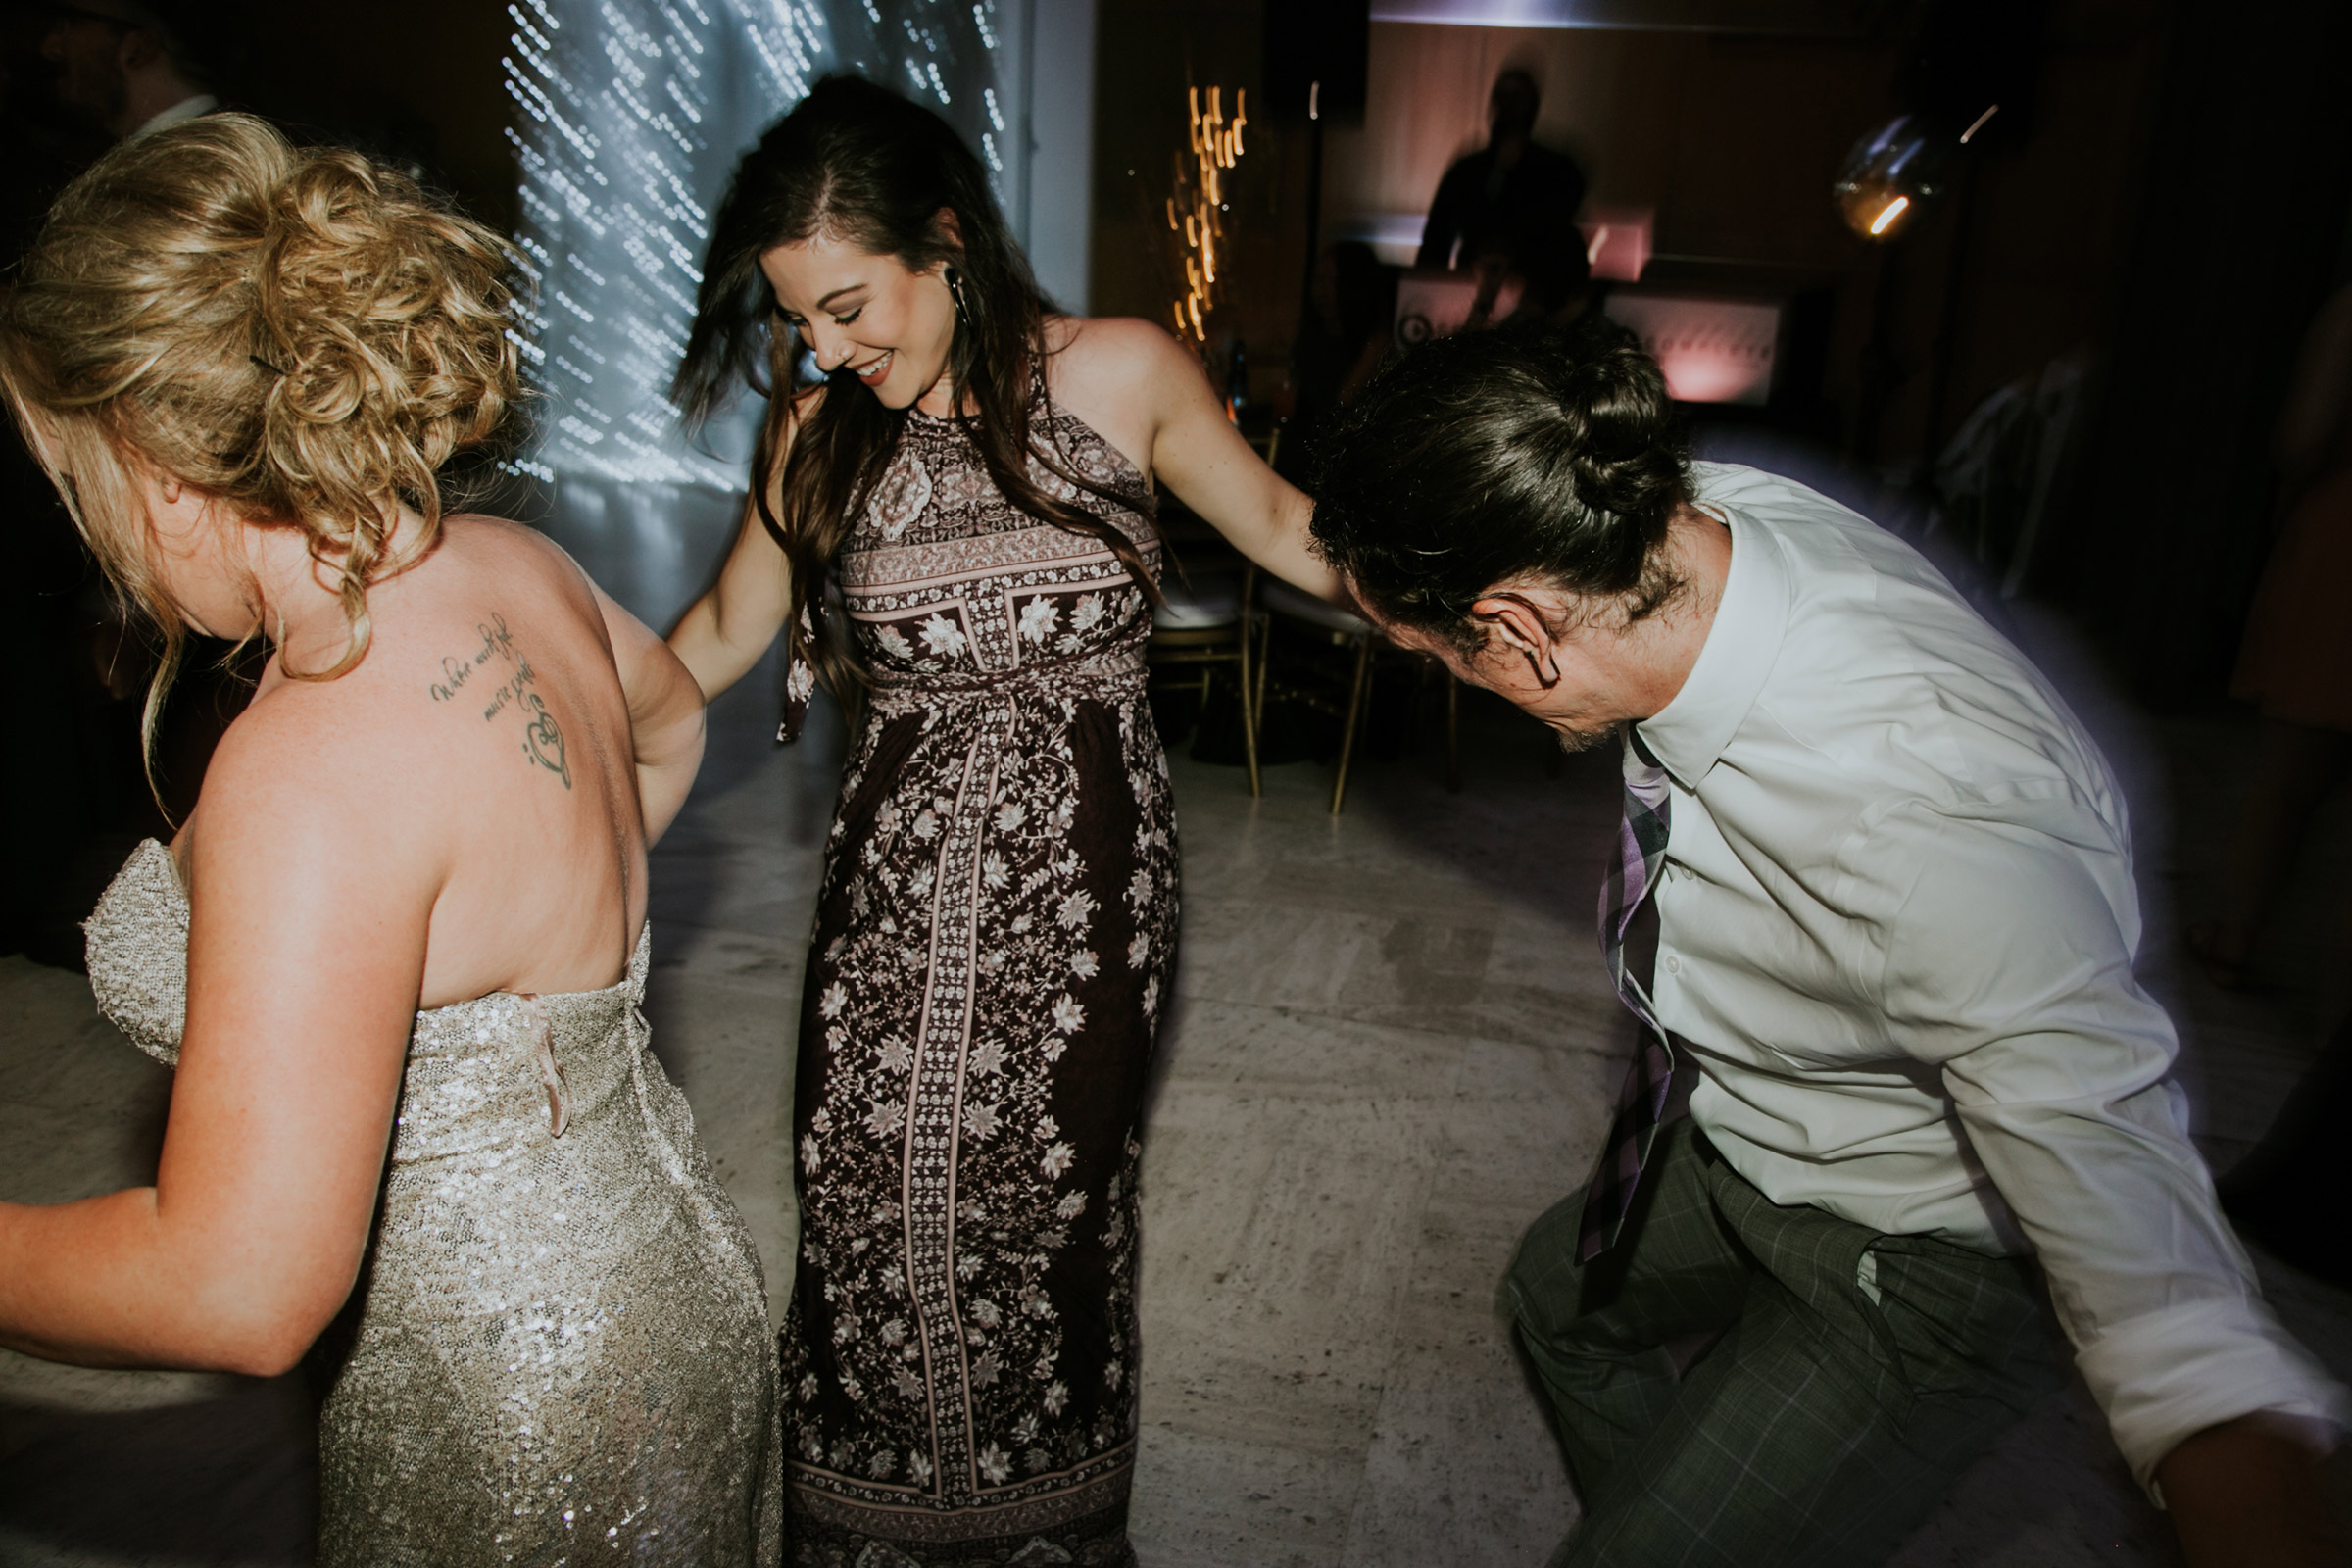 guest-dancing-on-the-dance-floor-after-hours-desmoines-iowa-art-center-raelyn-ramey-photography.jpg